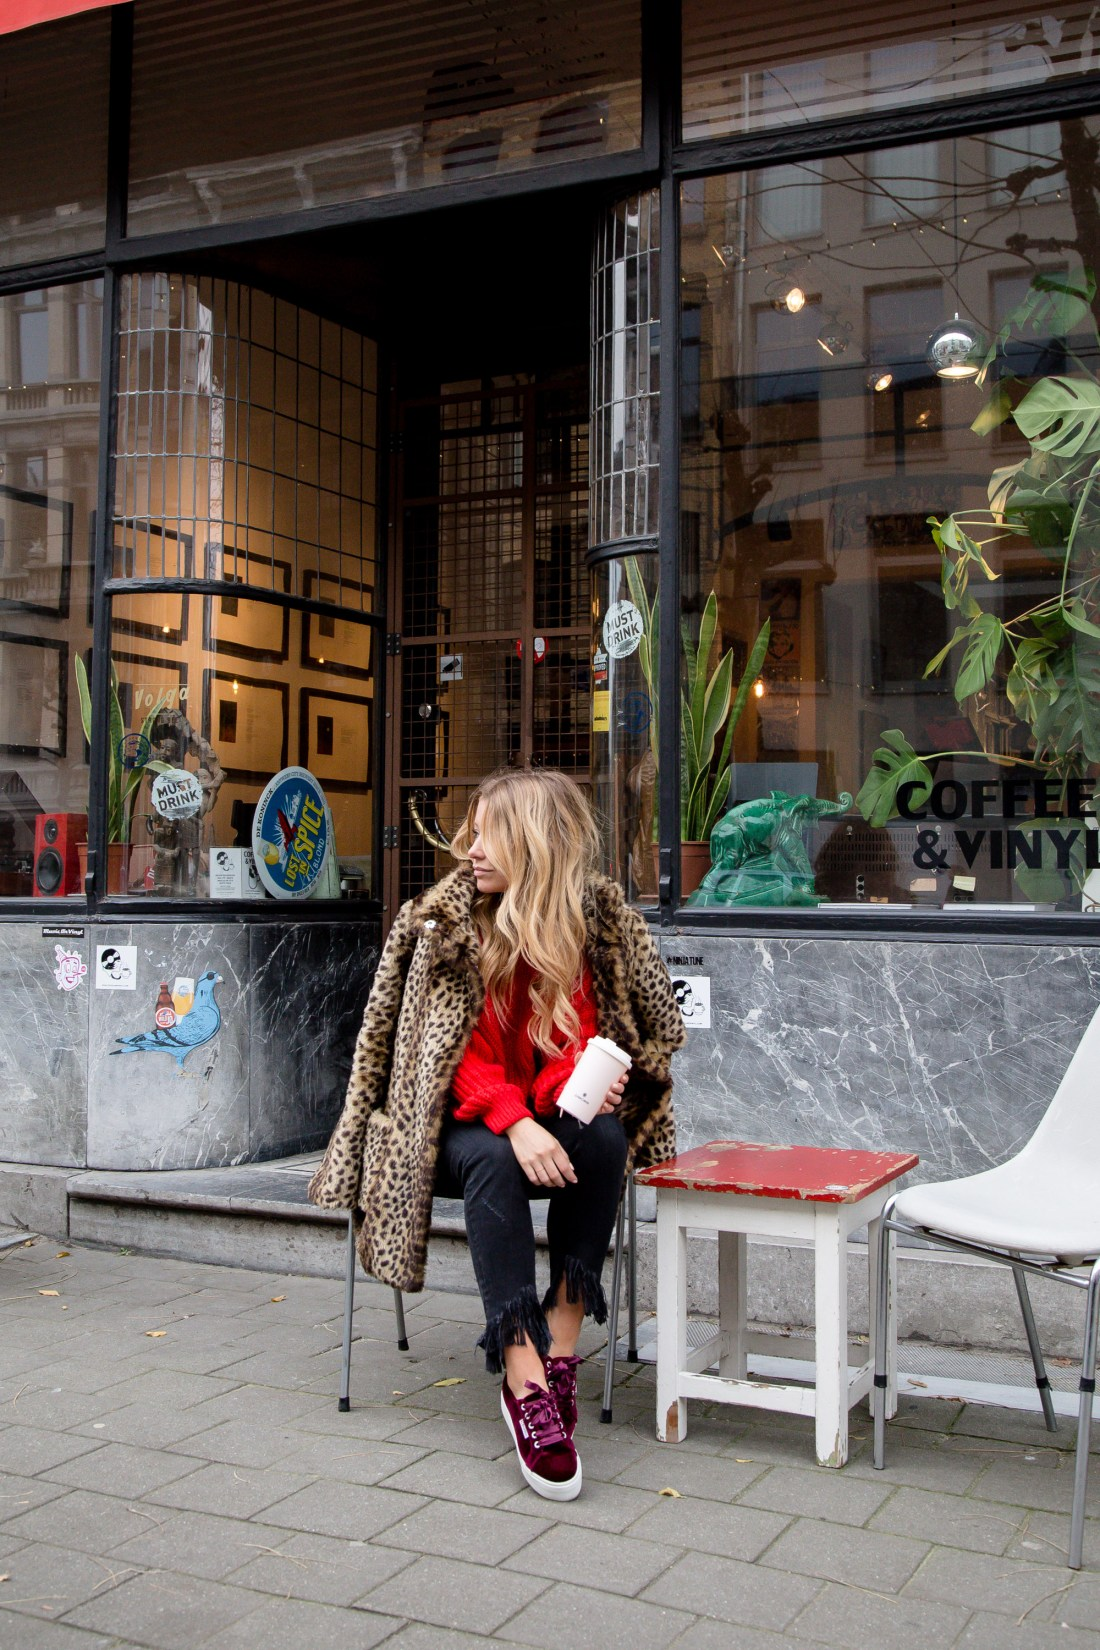 vleopard coat and red sweater streetstyle in Antwerp